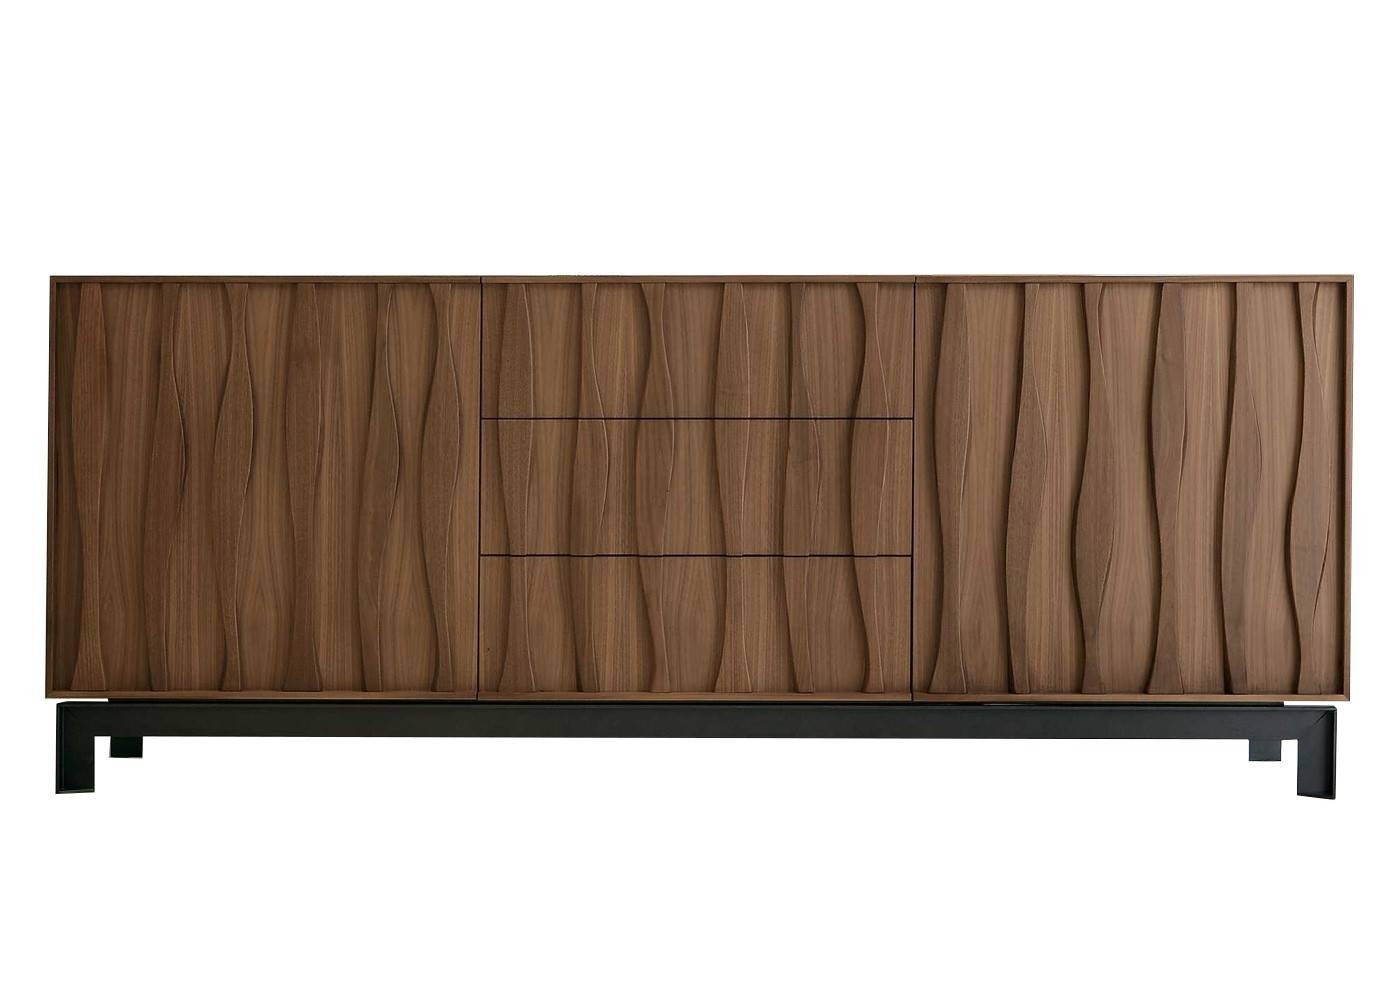 Designer Sideboards | Modern & Contemporary Sideboards | Heal's Intended For Thin Sideboards (View 13 of 15)